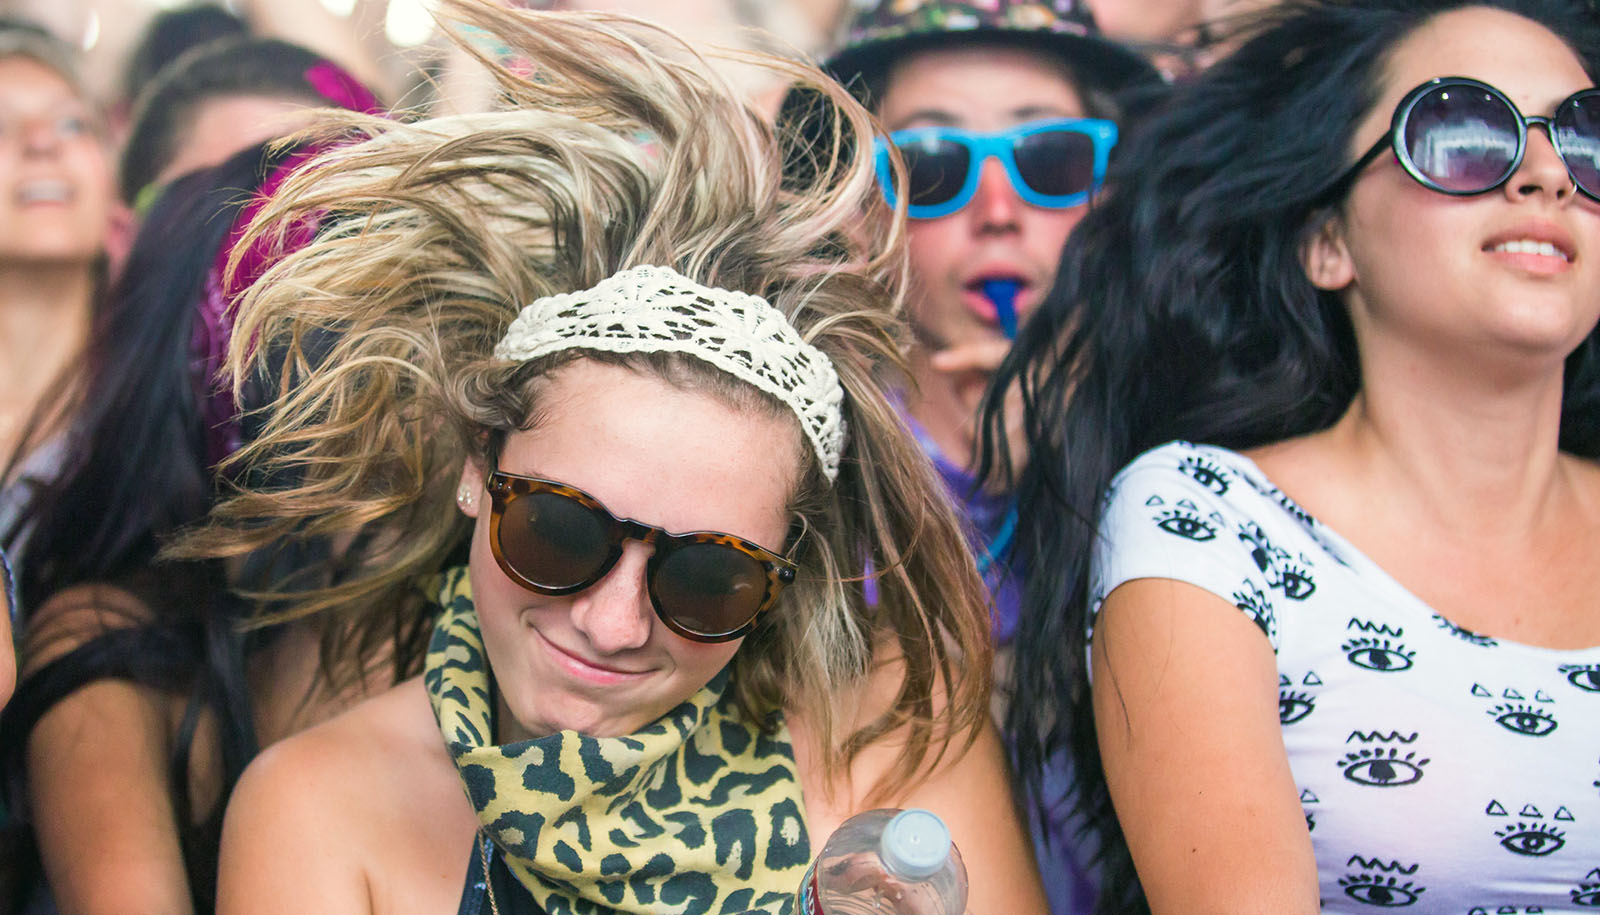 A bunch of new drugs show up in hair samples from festivals